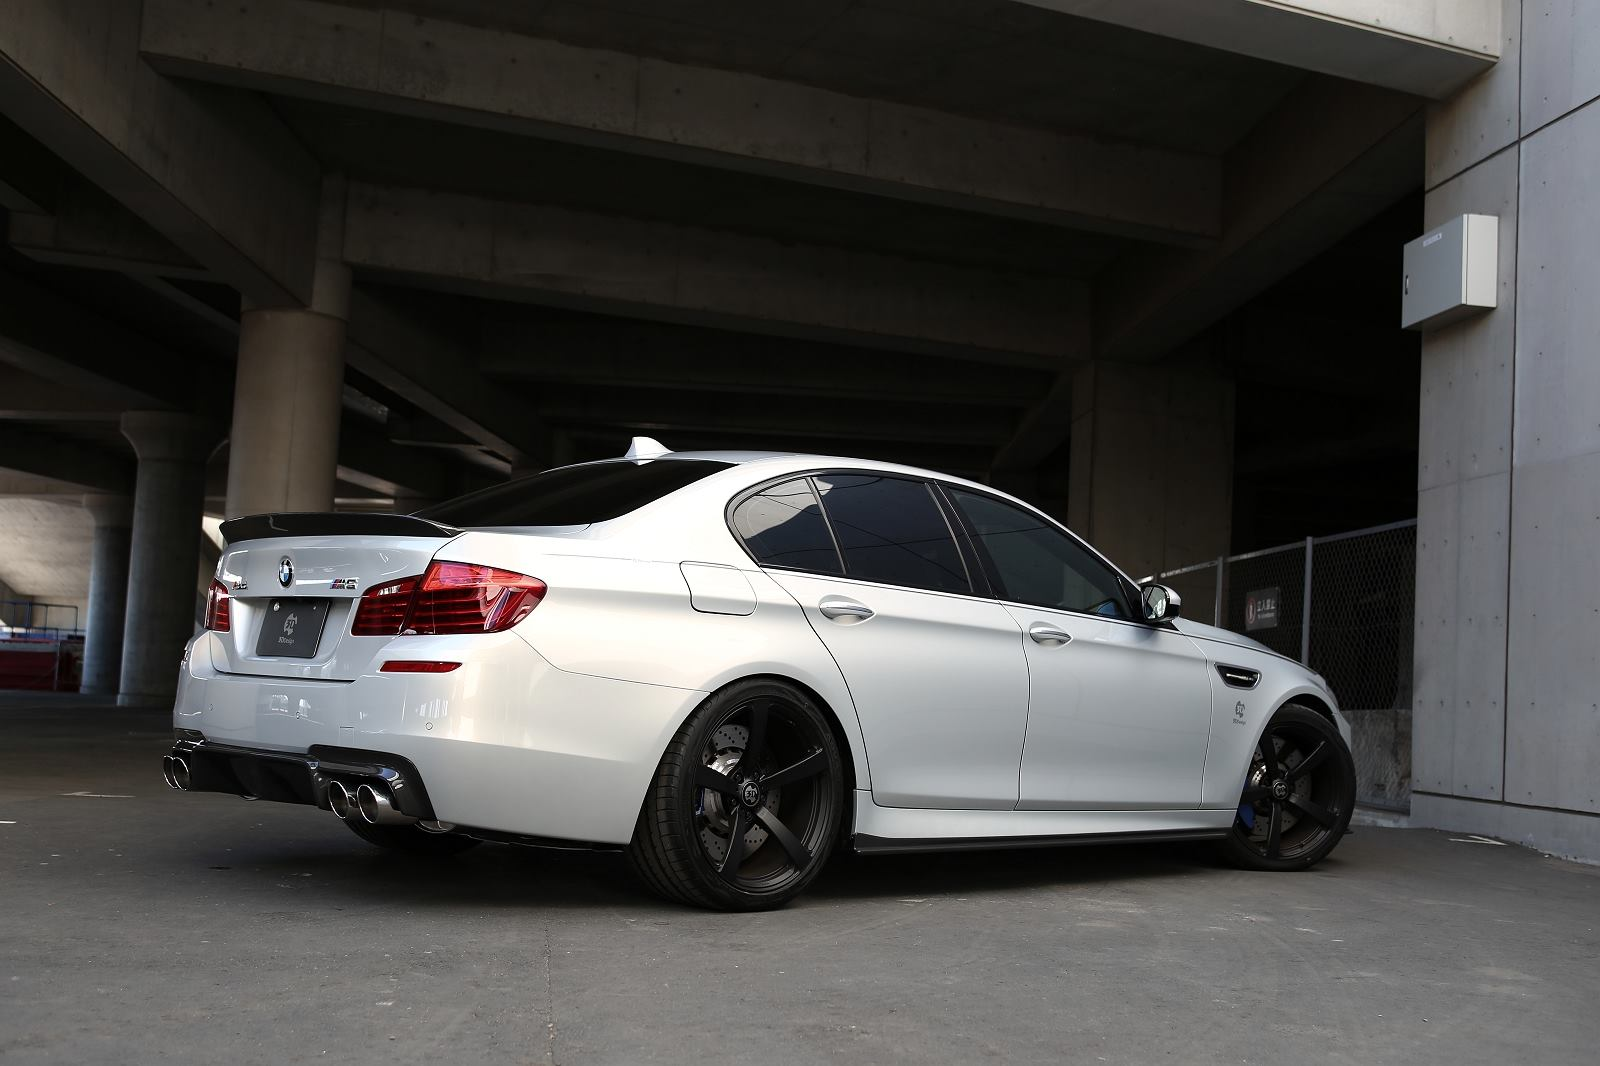 BMW M6 Gran Coupe >> 日系碳纖維精品 : 3D Design BMW F10 M5 - G7 車庫柒號